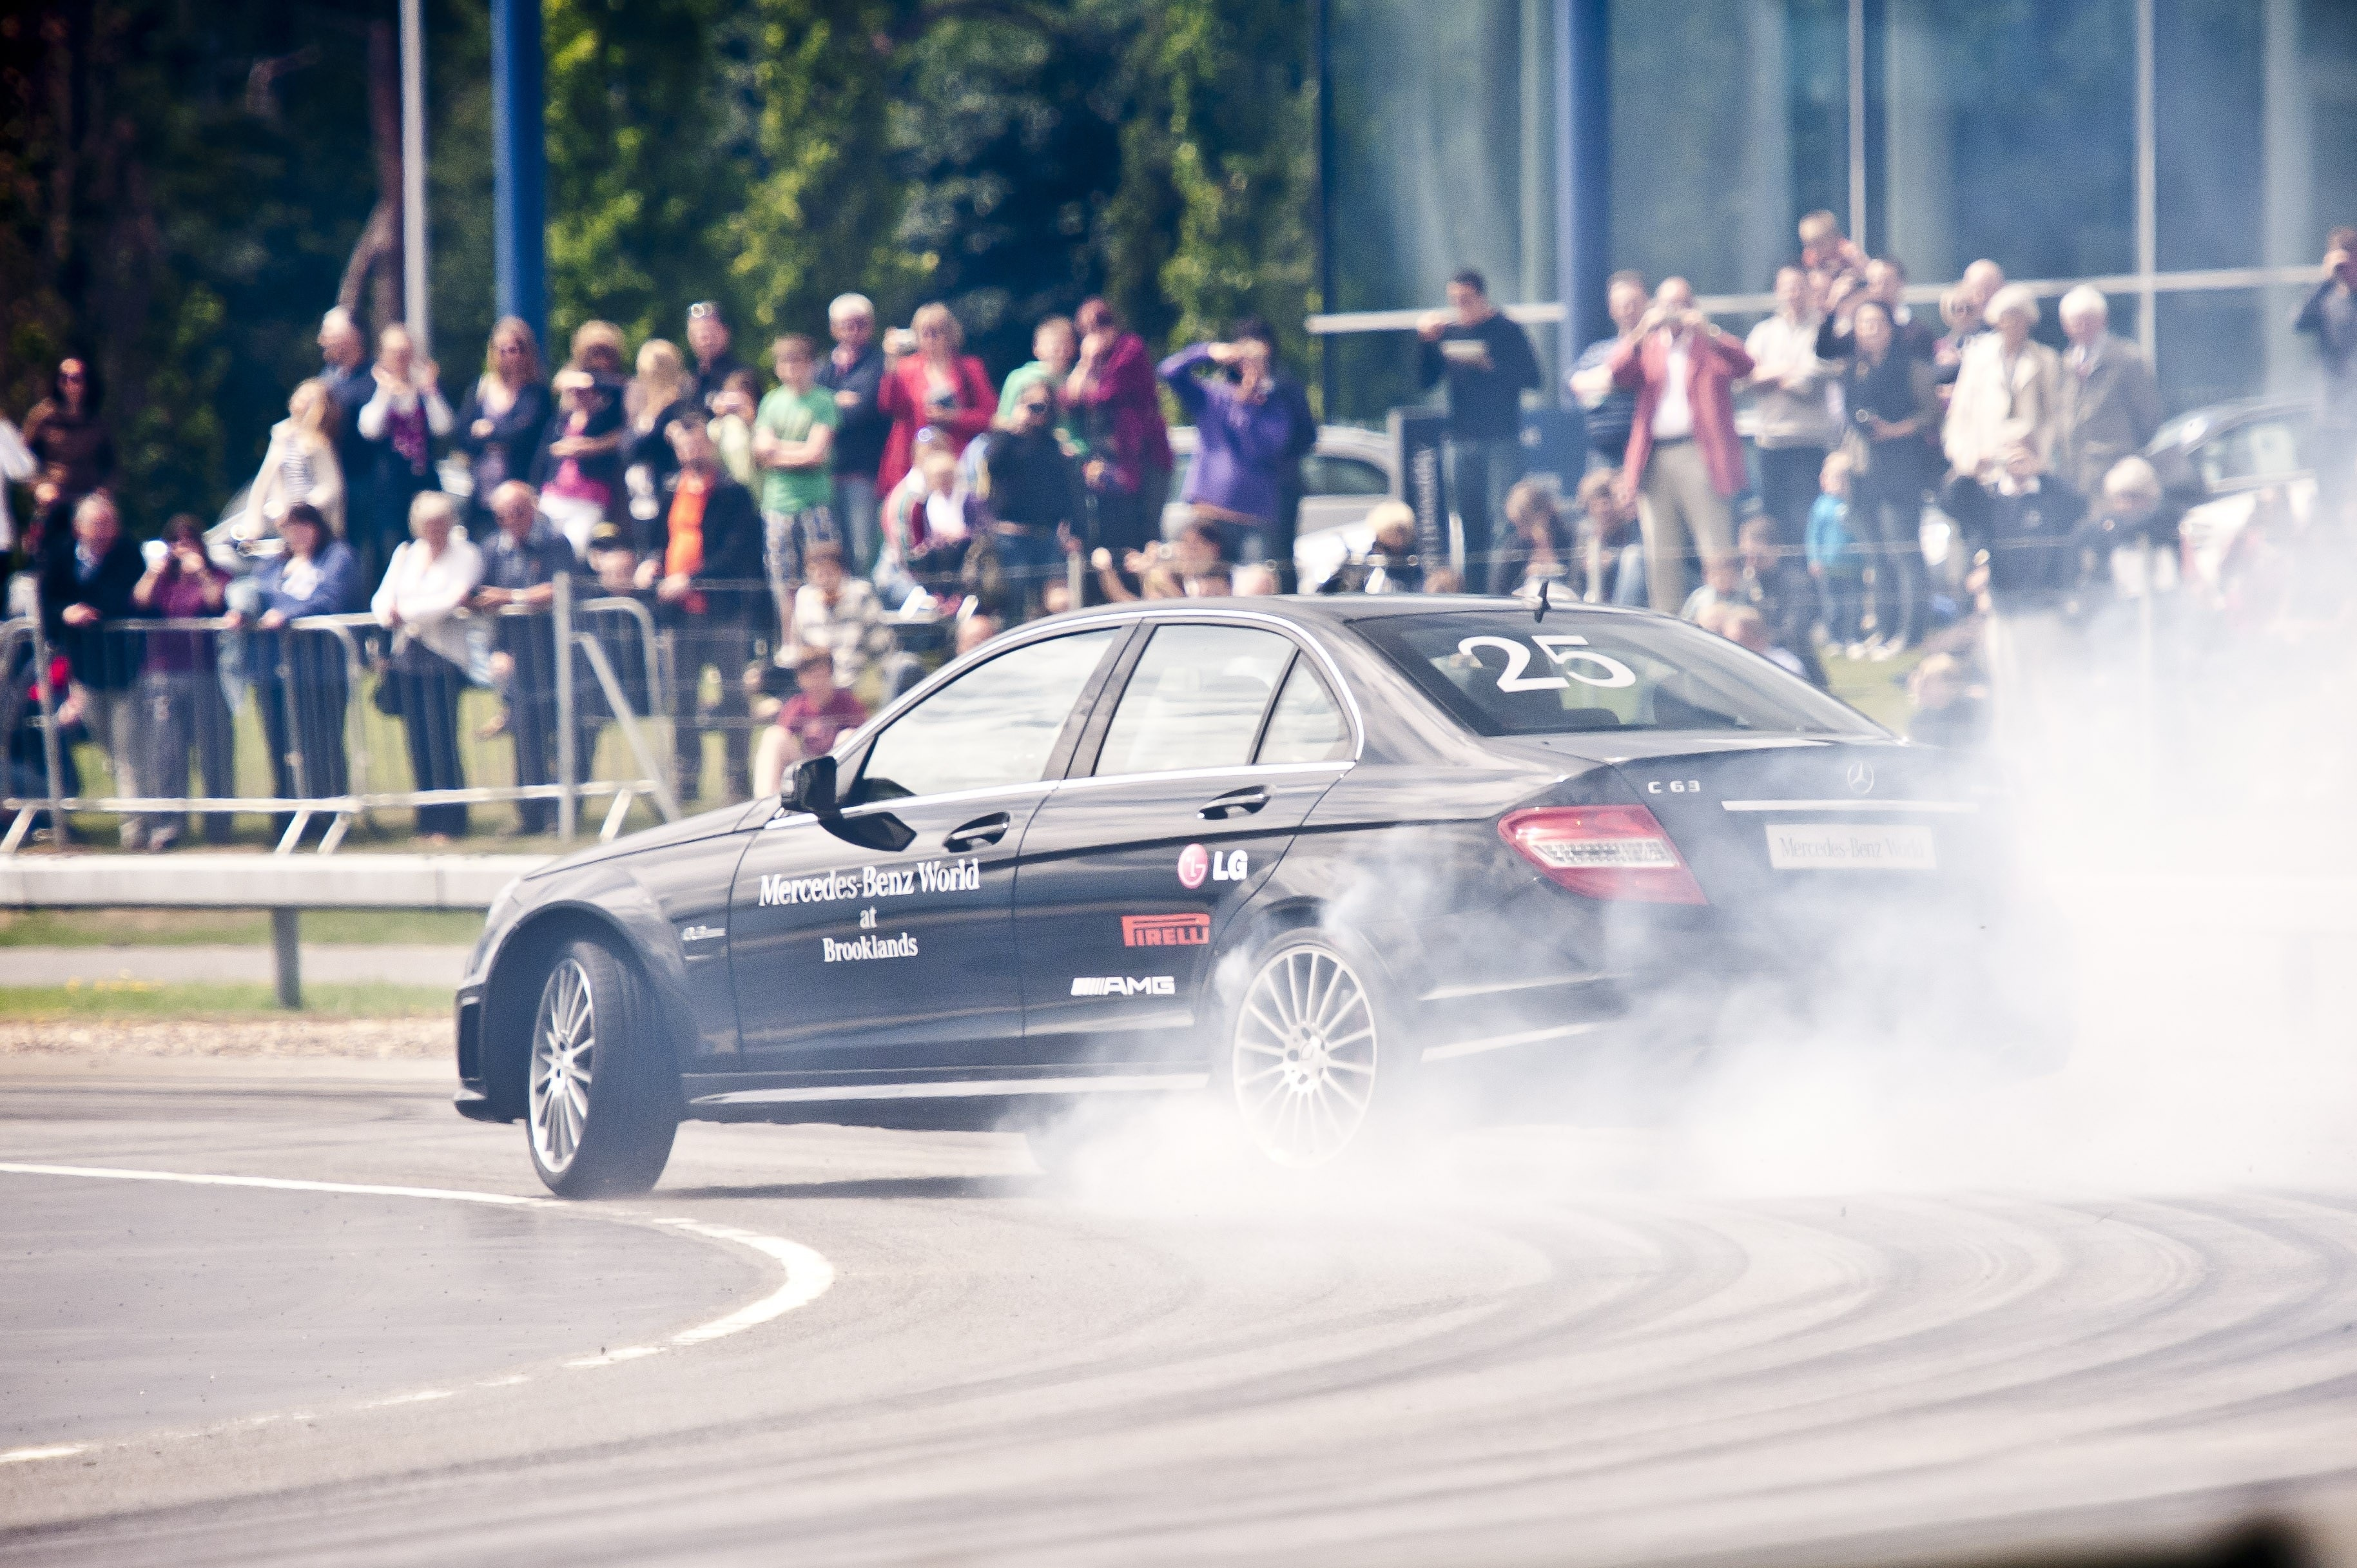 448504 Mauro Calo Entertains The Crowds Breaking The World Record For The Longest Car Drift